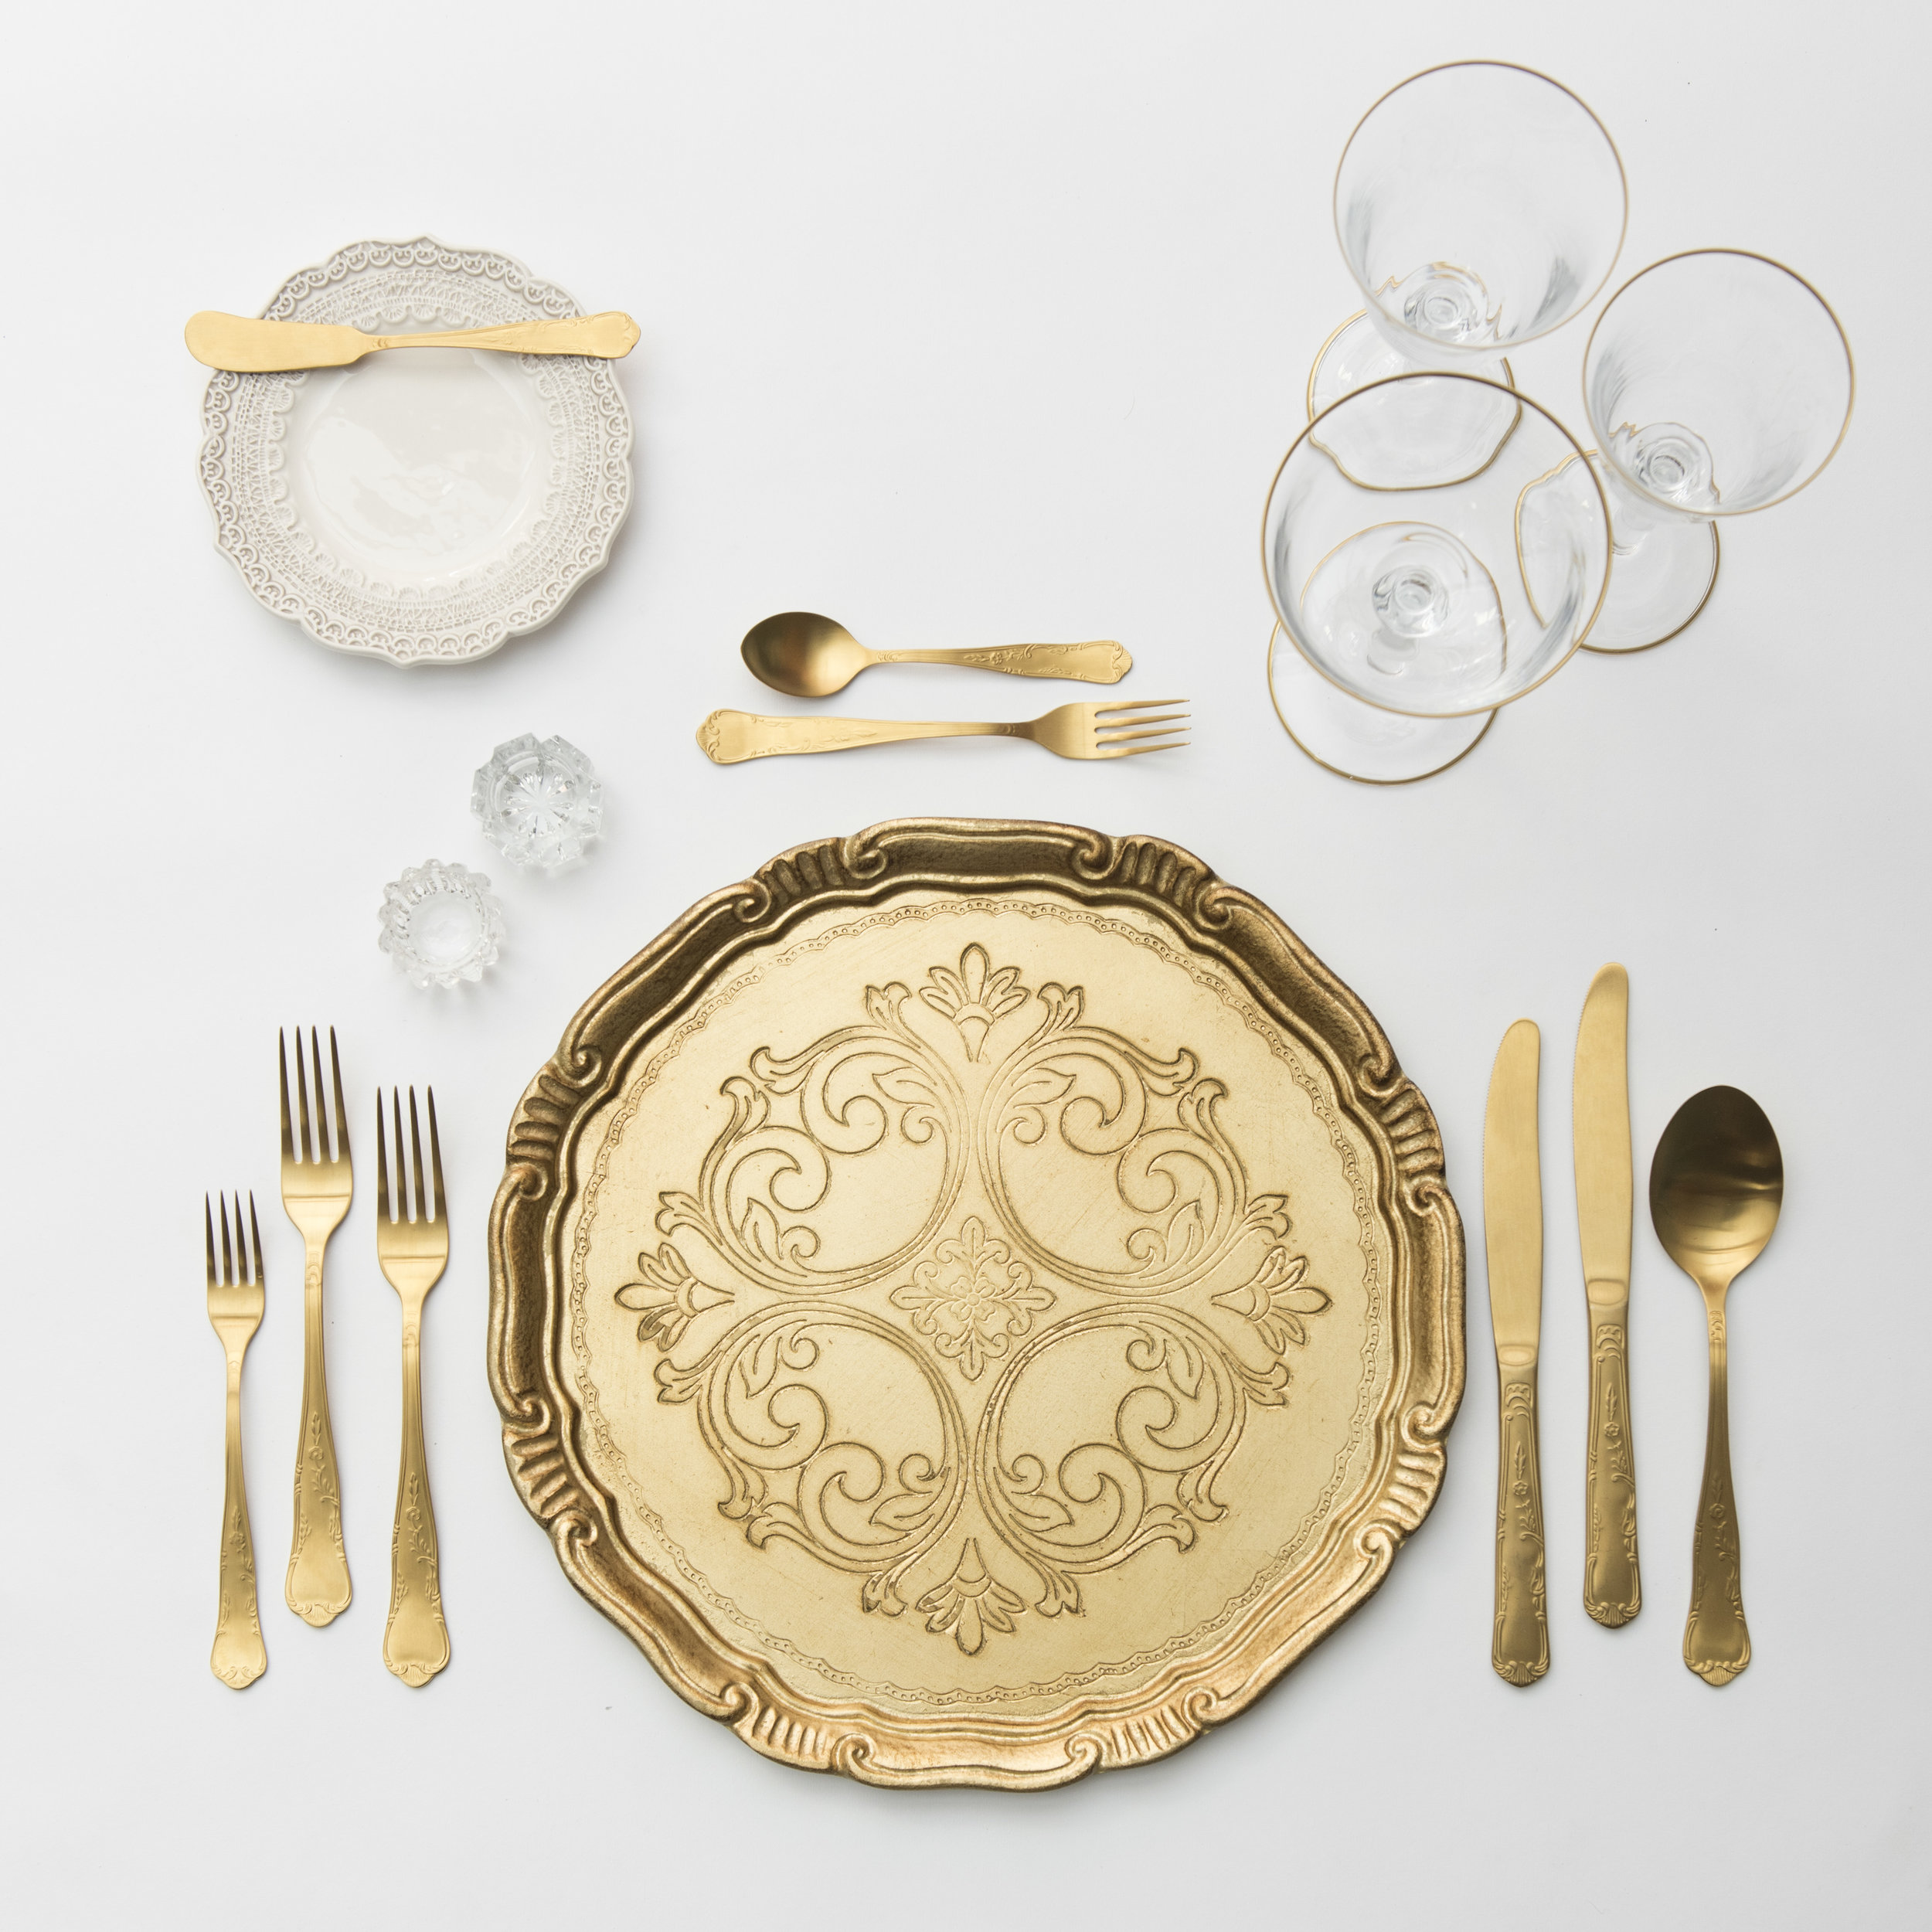 RENT: Florentine Chargers in Gold + Lace Dinnerware in White + Chateau Flatware in Matte Gold + Chloe 24k Gold Rimmed Stemware + Antique Crystal Salt Cellars   SHOP: Florentine Chargers in Gold + Chloe 24k Gold Rimmed Stemware